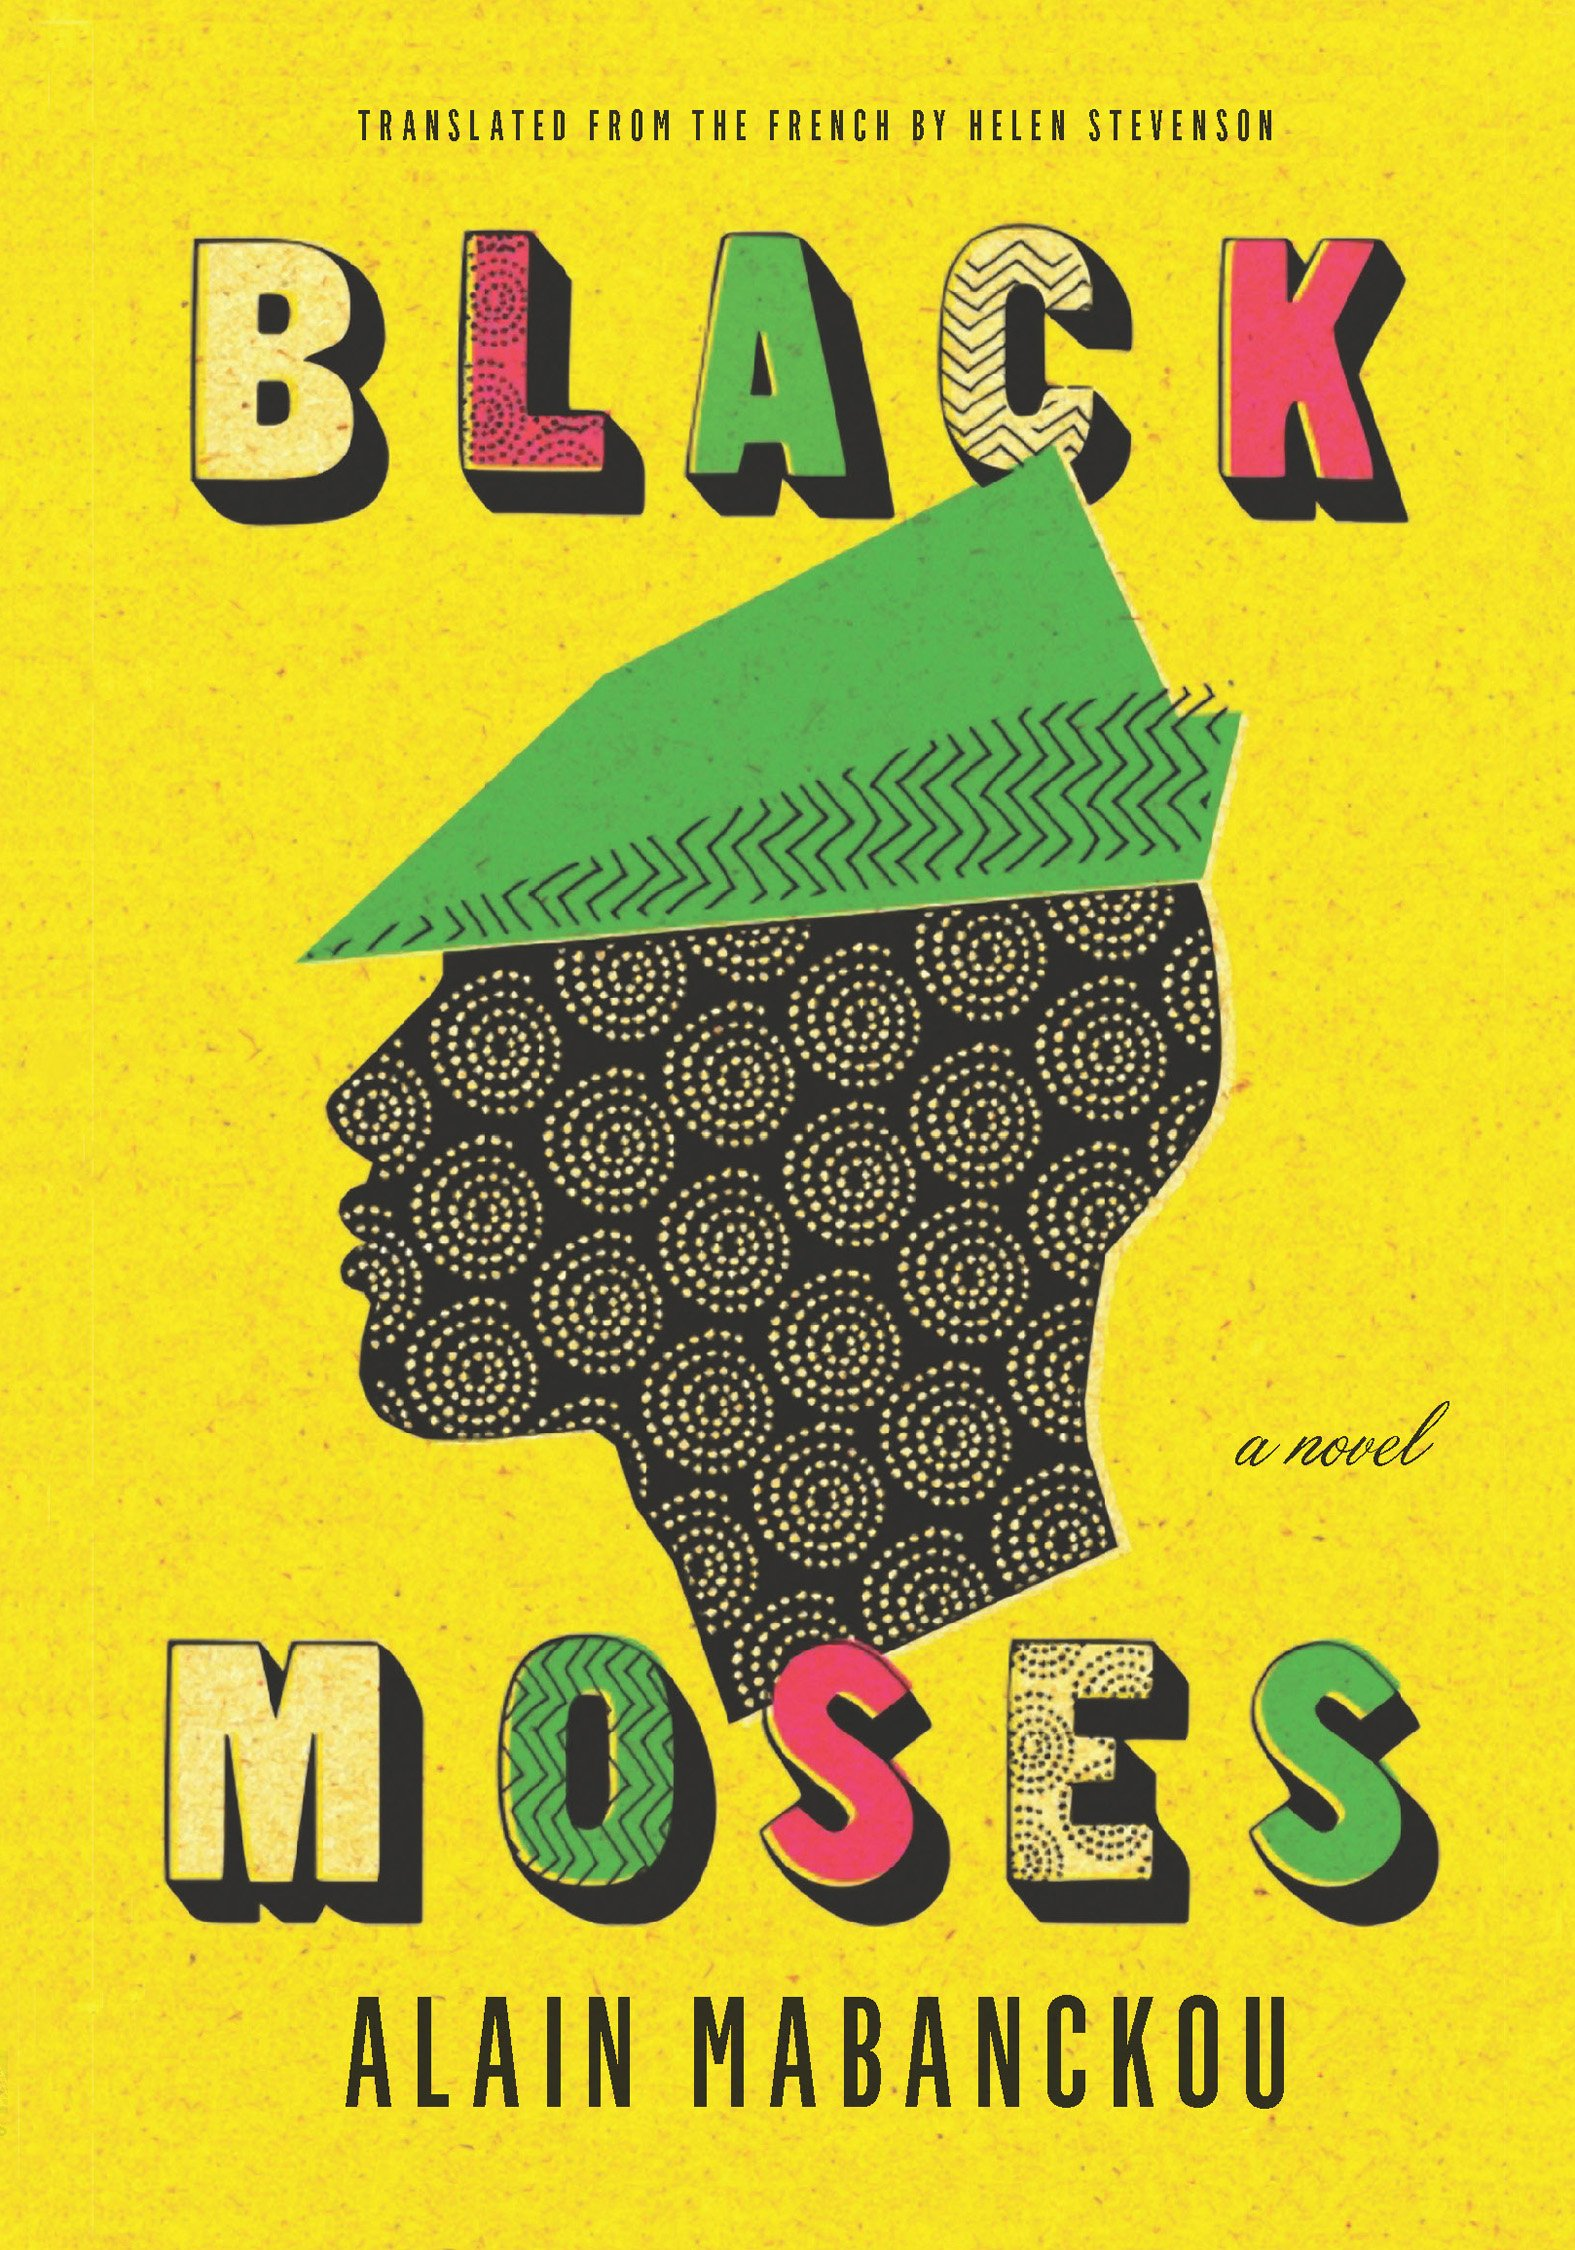 Black Moses: A Novel Hardcover – June 6, 2017 Alain Mabanckou Helen Stevenson The New Press 162097293X